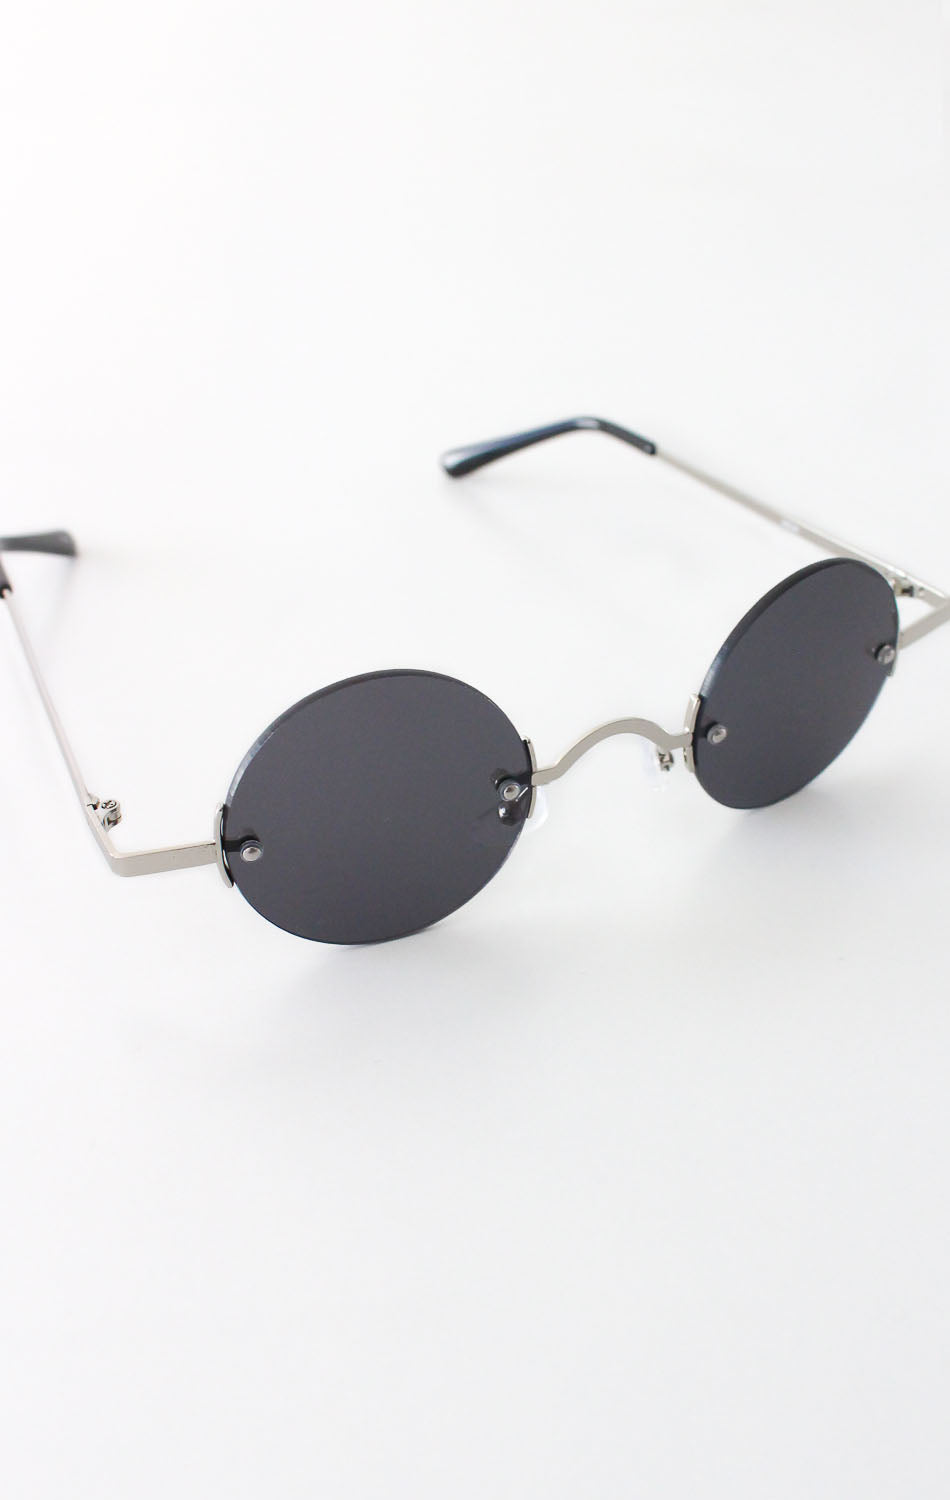 NYCT Clothing Vintage Inspired Round Sunglasses